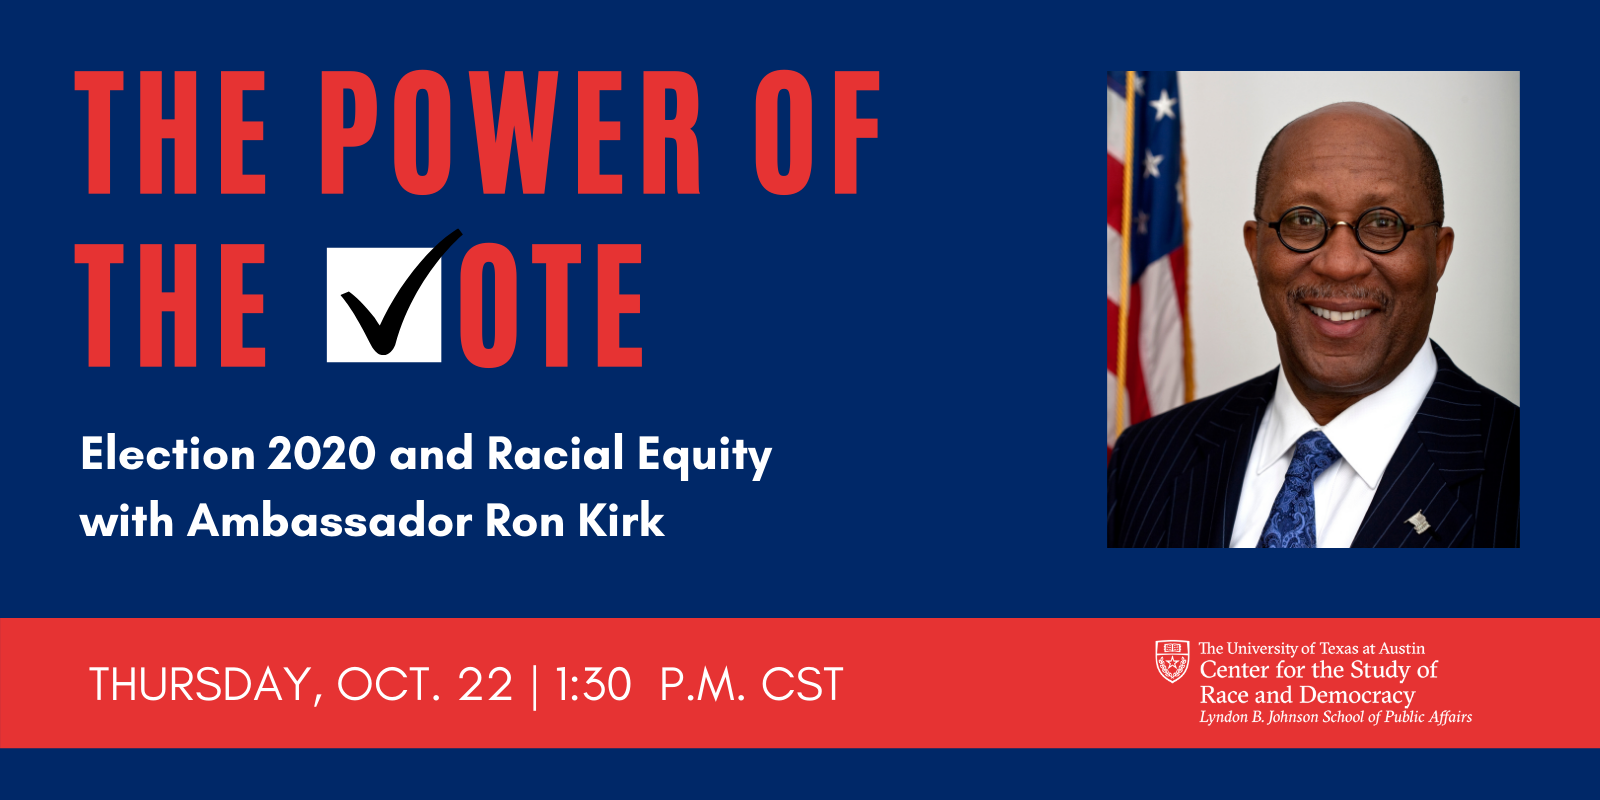 CSRD Webinar: The Power of the Vote: Election 2020 and Racial Equity with Ambassador Ron Kirk